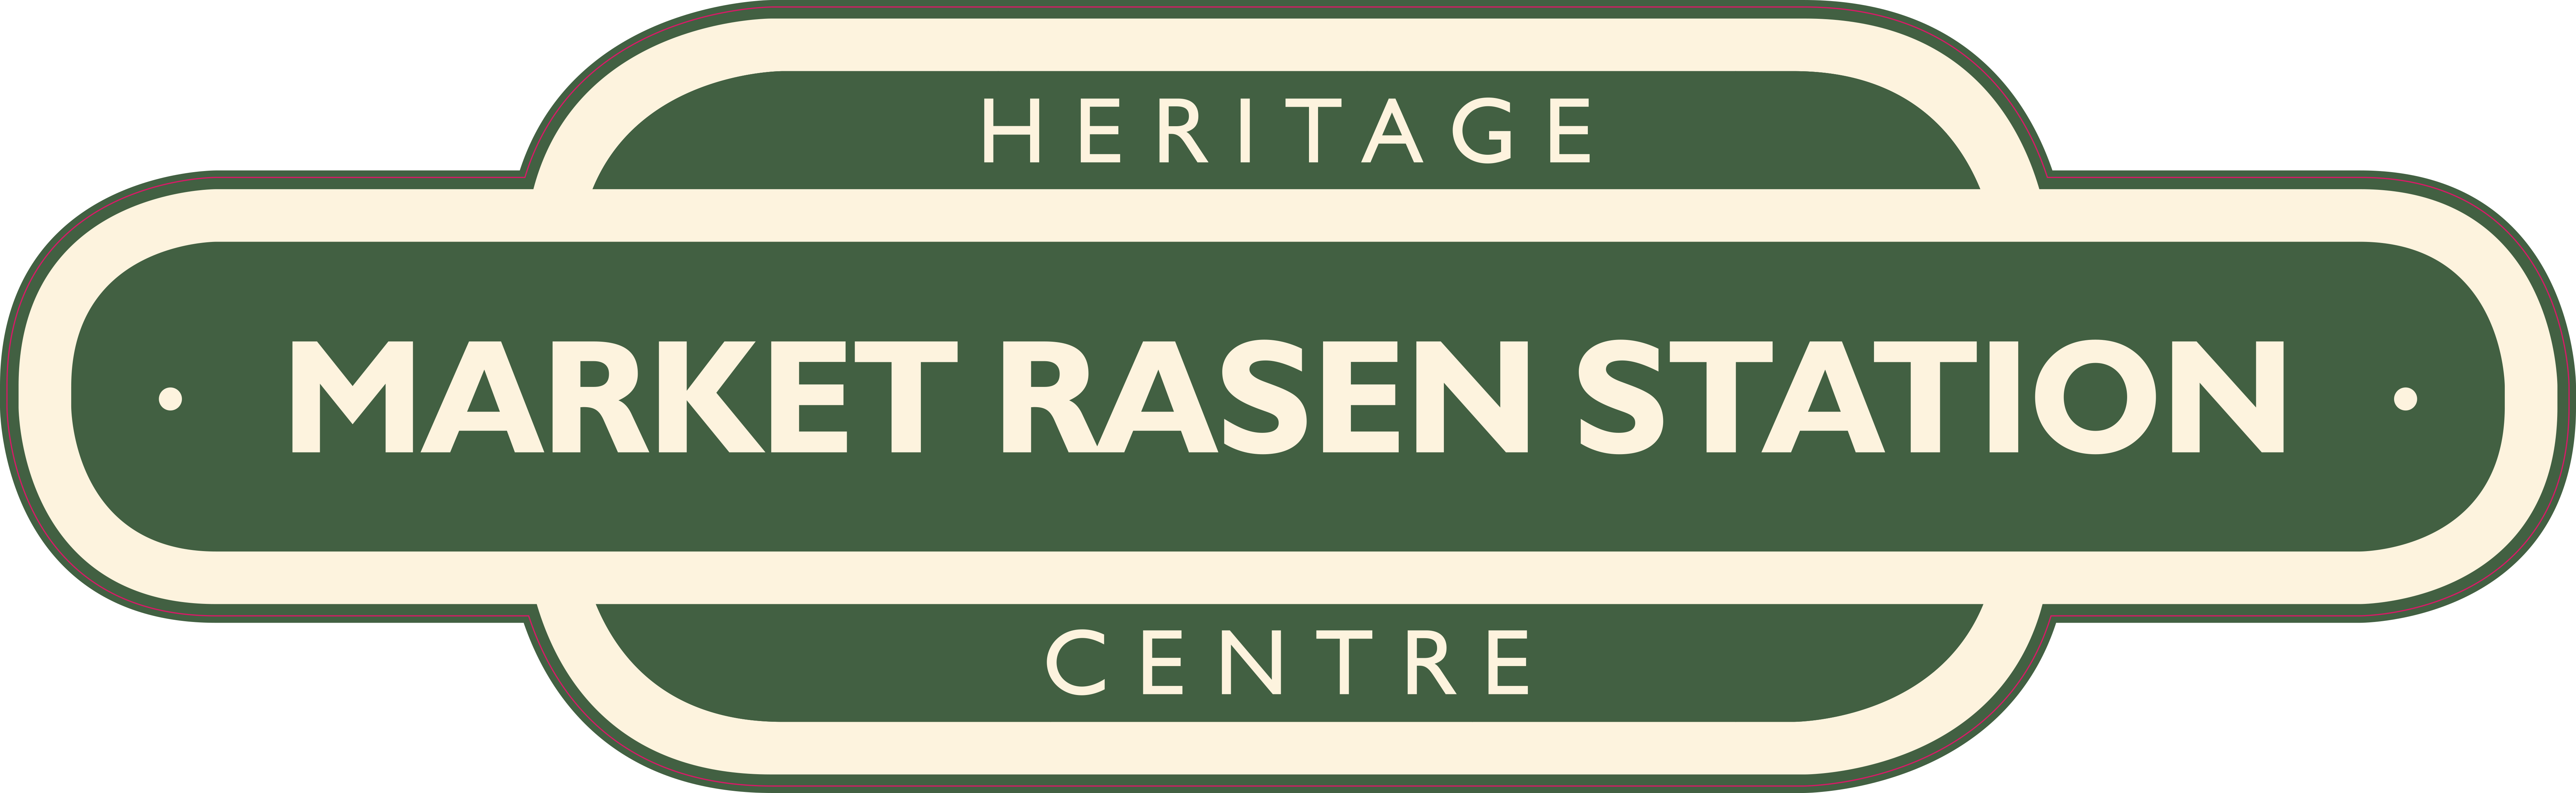 Market Rasen Station Building & Heritage Centre - The Restoration Story